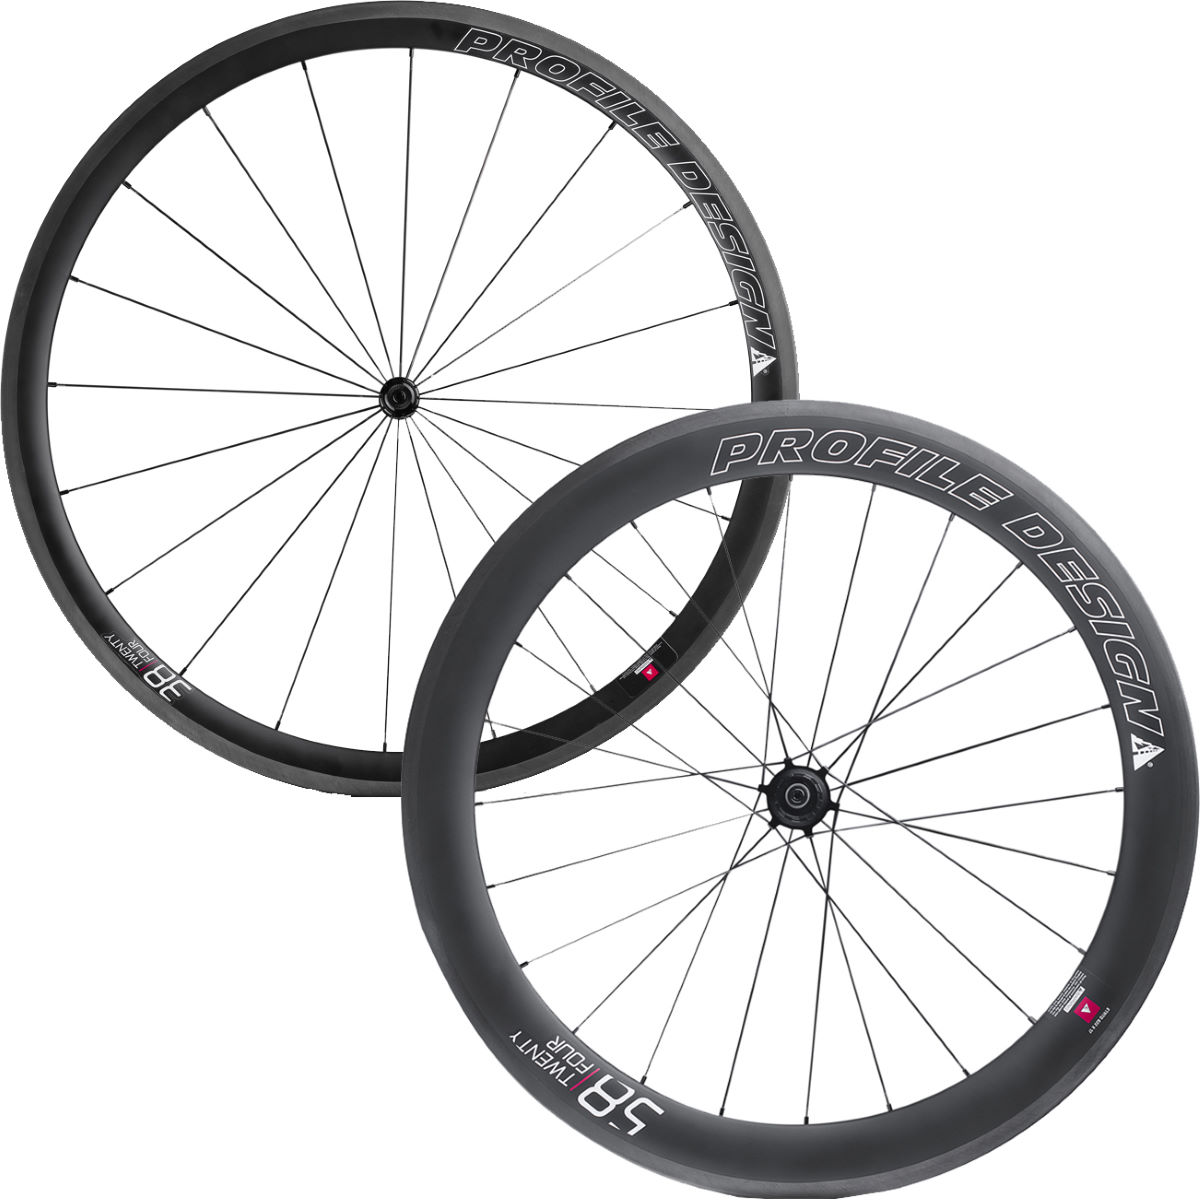 Profile Design 38/58 Twenty Four Full Carbon Clincher Wheelset - 700c Shimano/SRAM Noir Roues performance